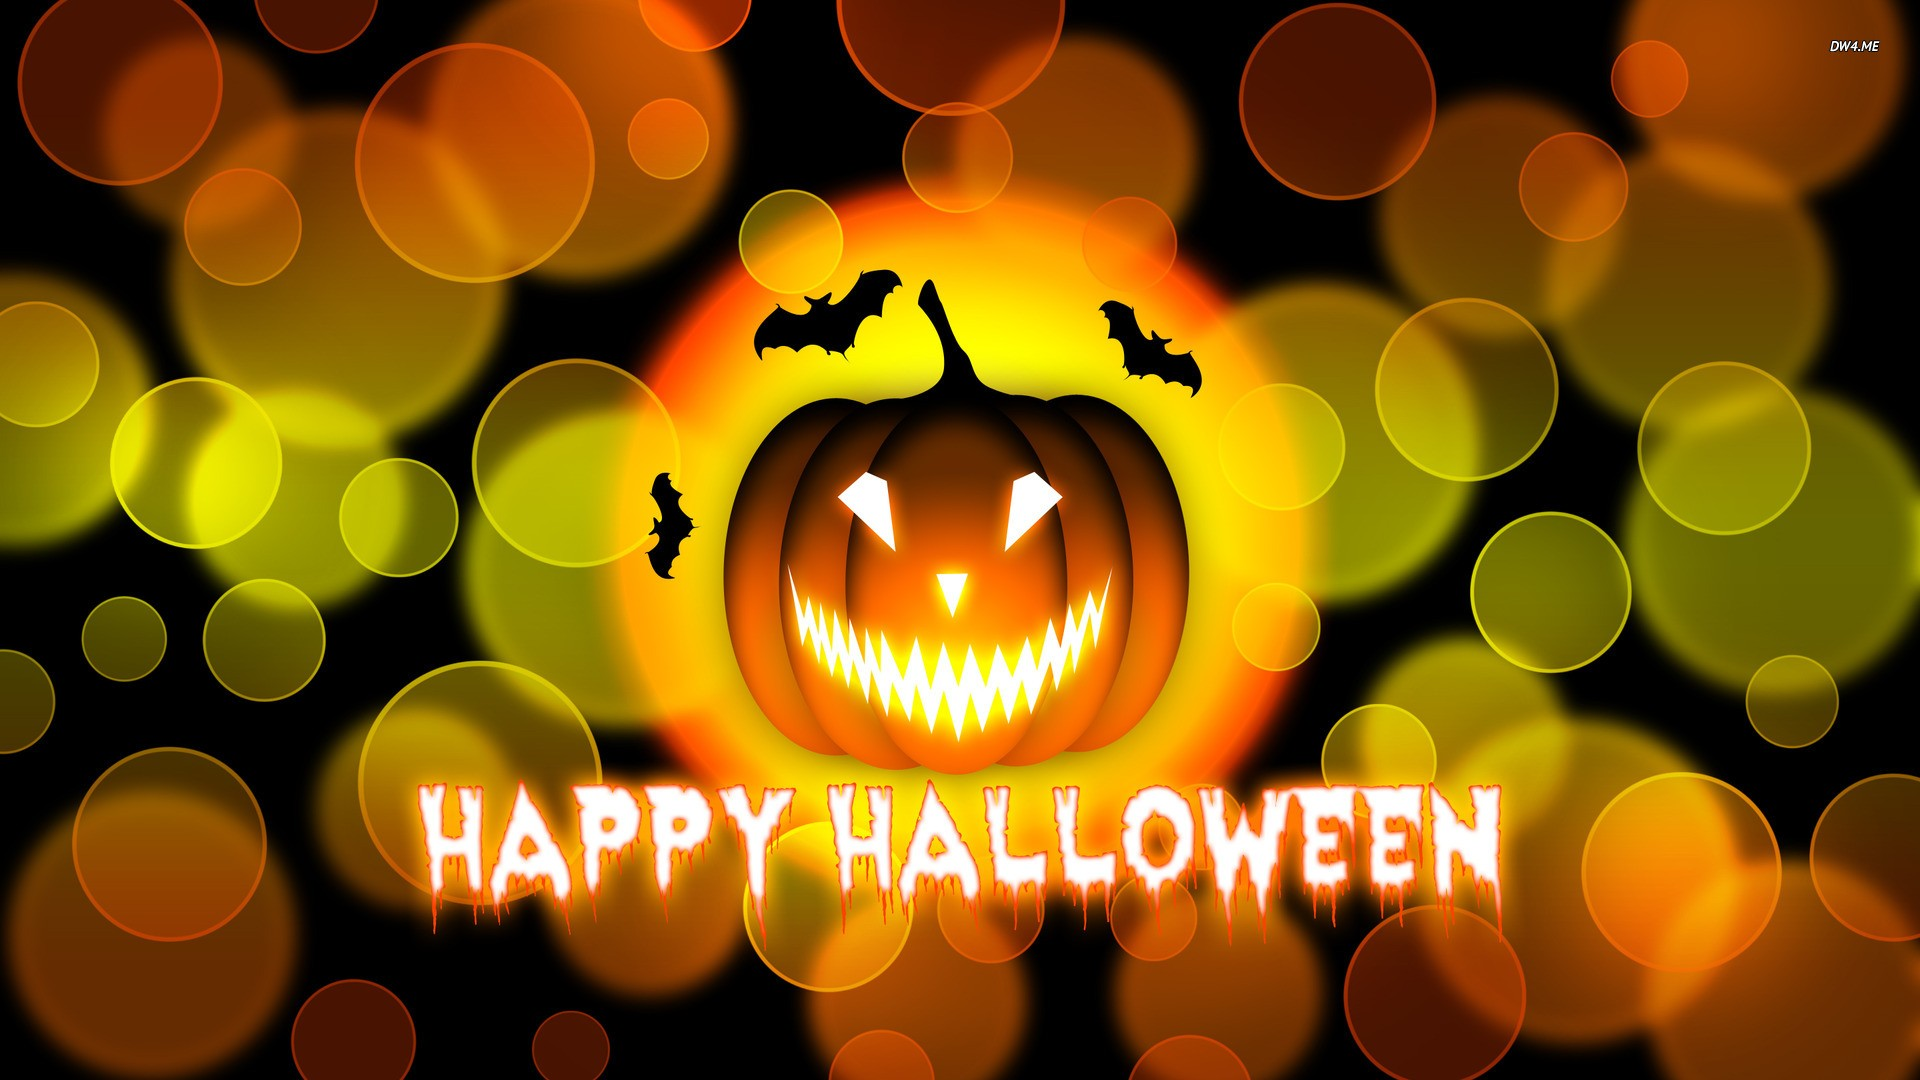 Happy Halloween wallpaper ·① Download free stunning full HD backgrounds for desktop and mobile